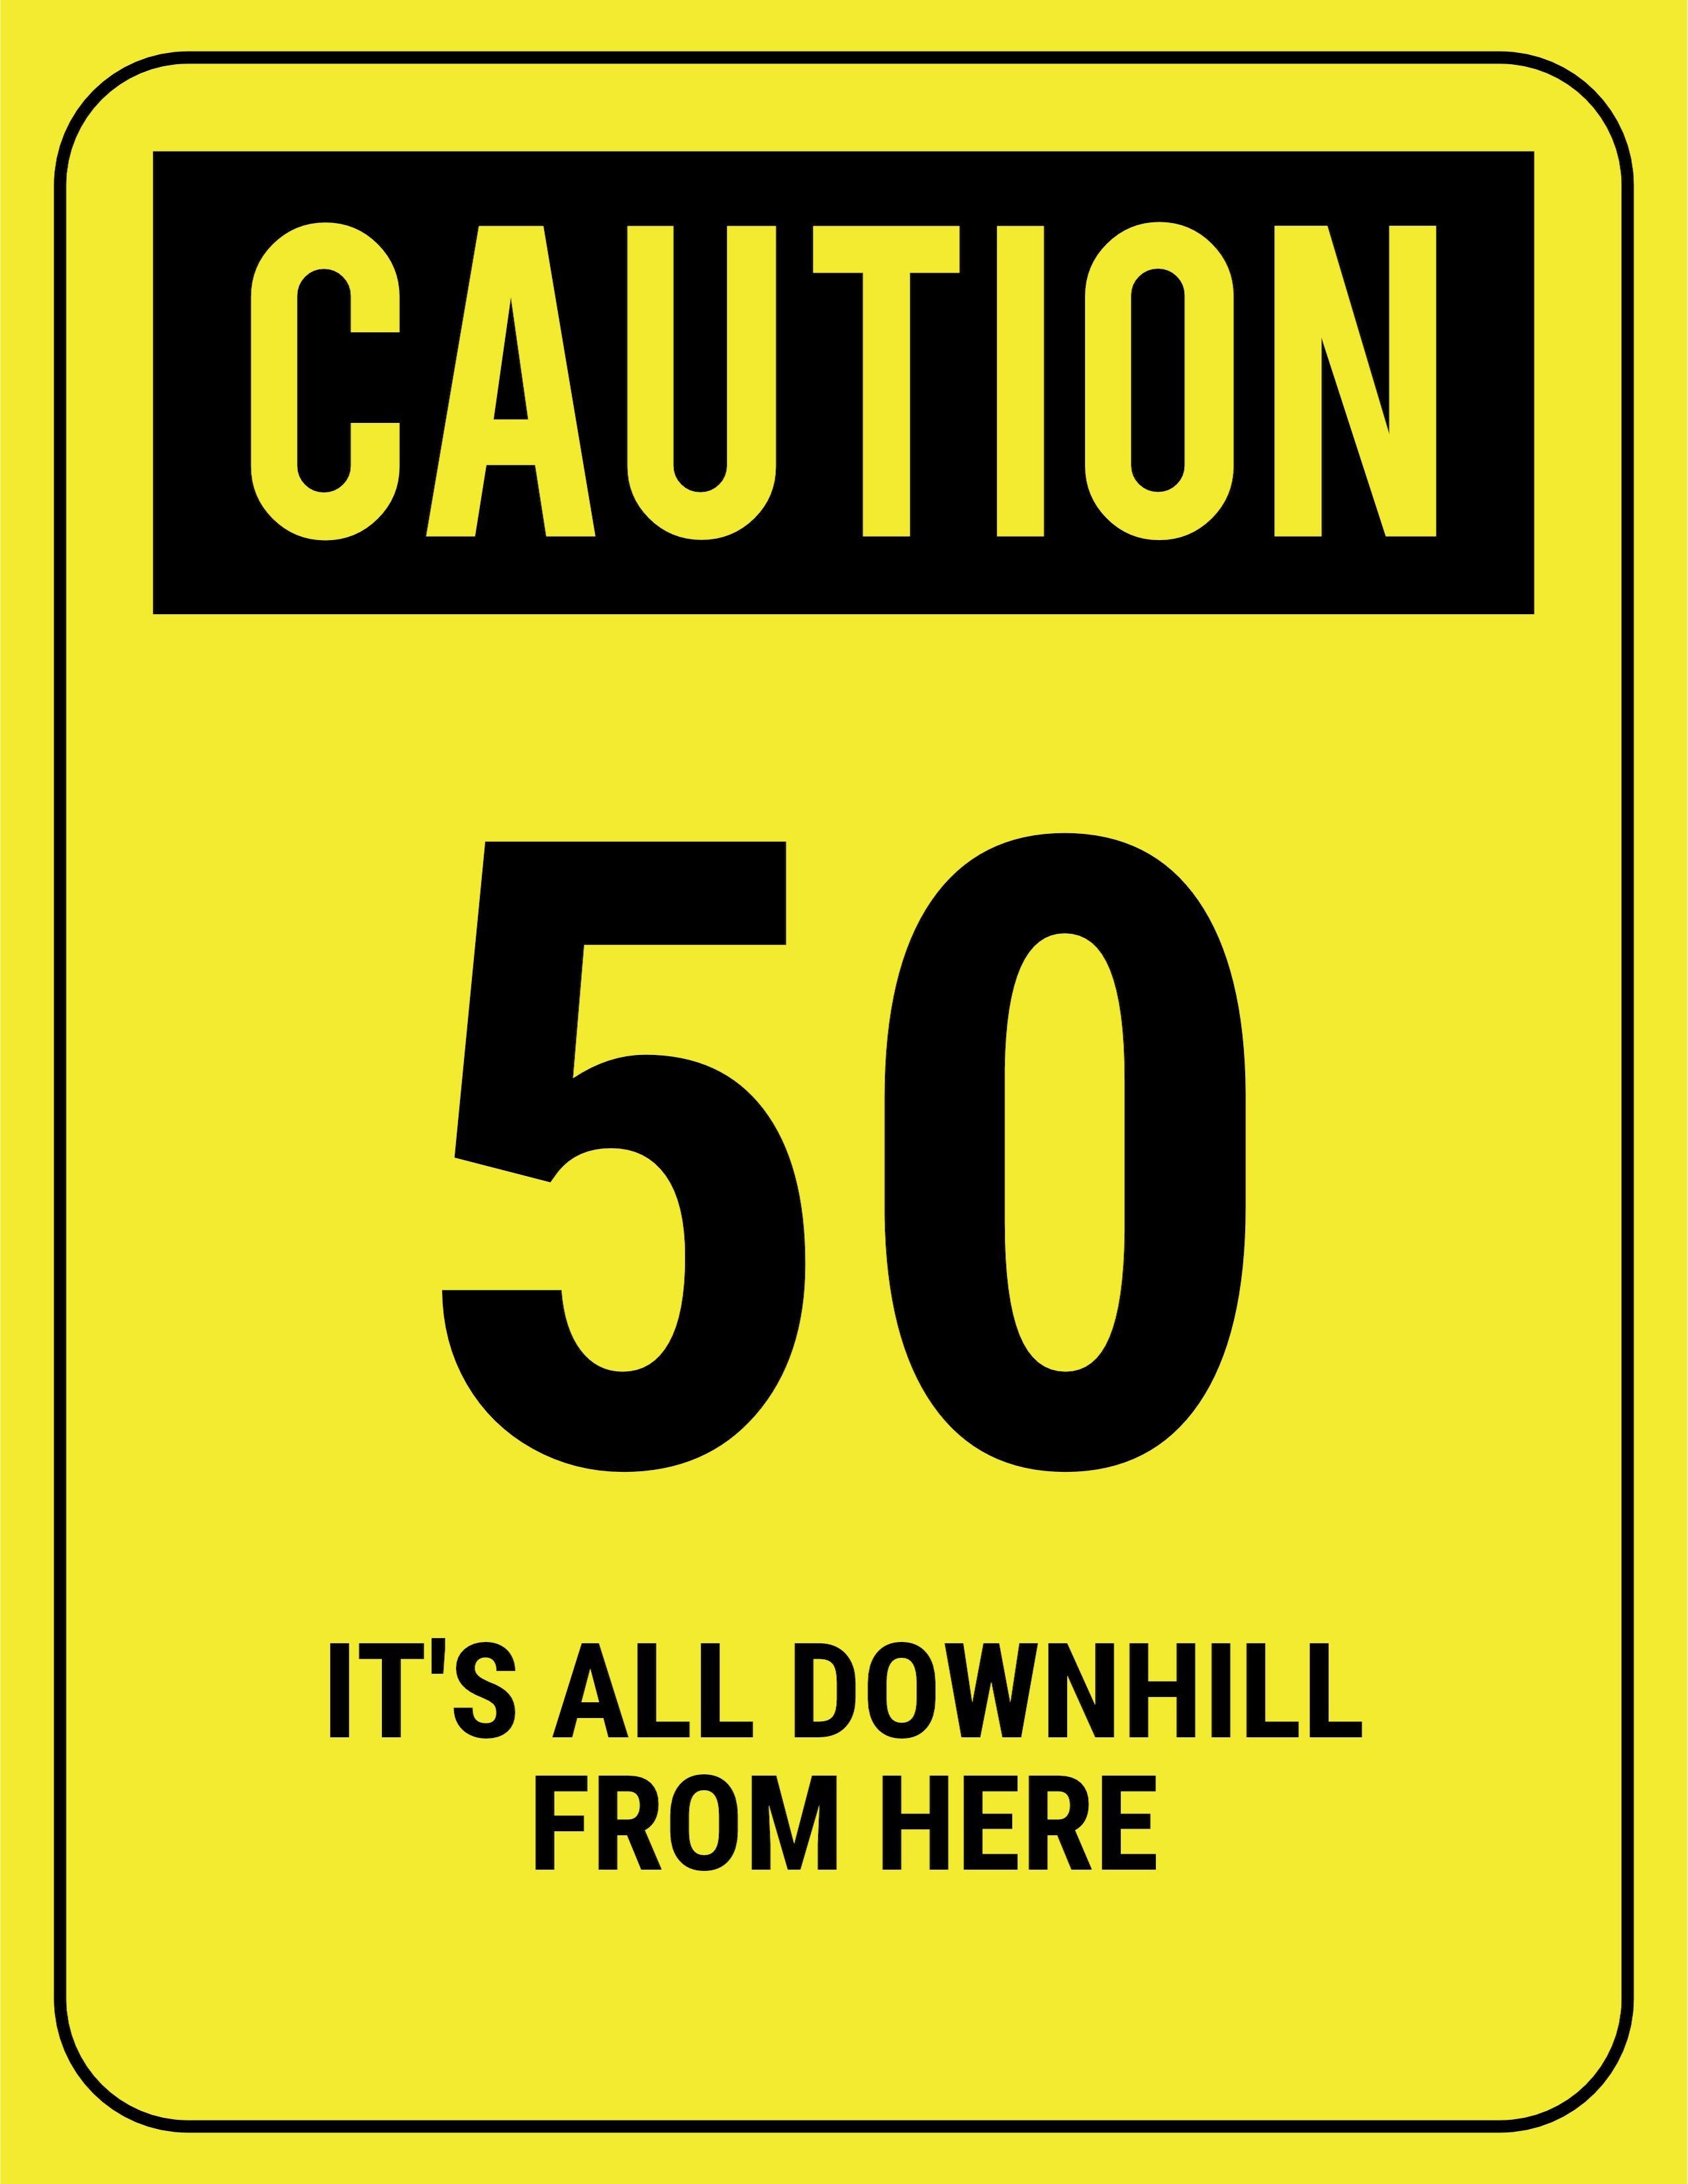 printable over the hill birthday signs ; funny-safety-sign-caution-50-downhill-2550x3300